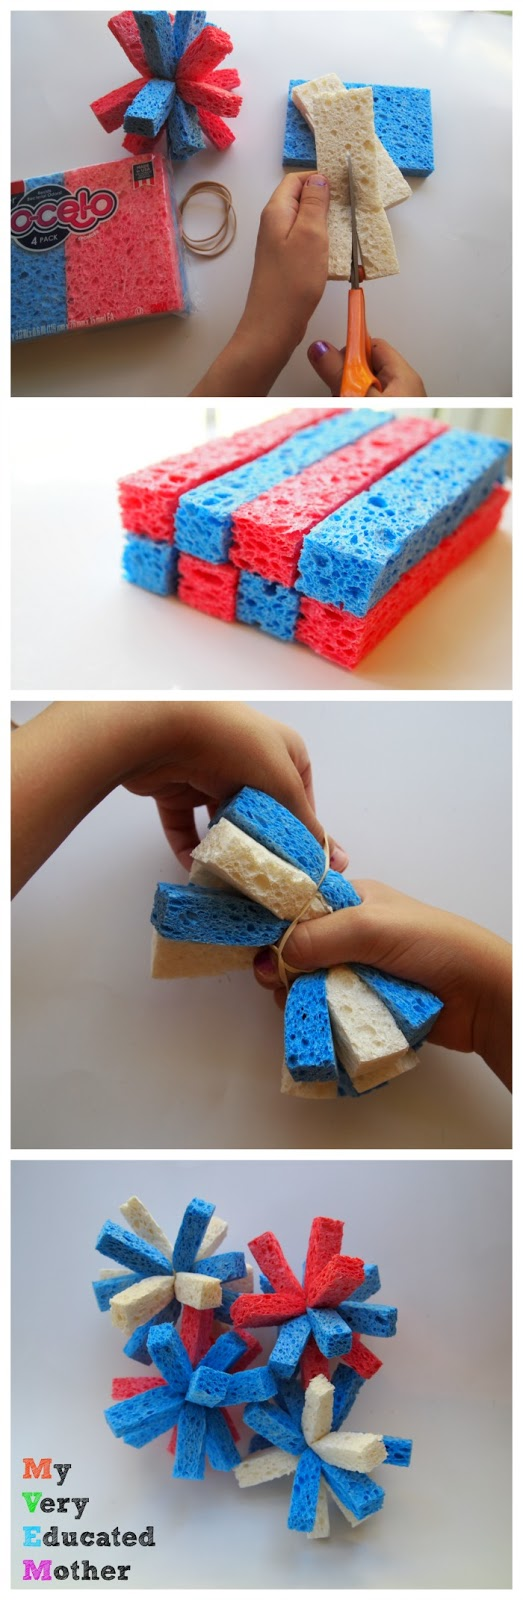 Sponge balls are super easy to make: cut your sponges into fourths lengthwise and secure with a rubber band.A great summertime kids' activity and craft!